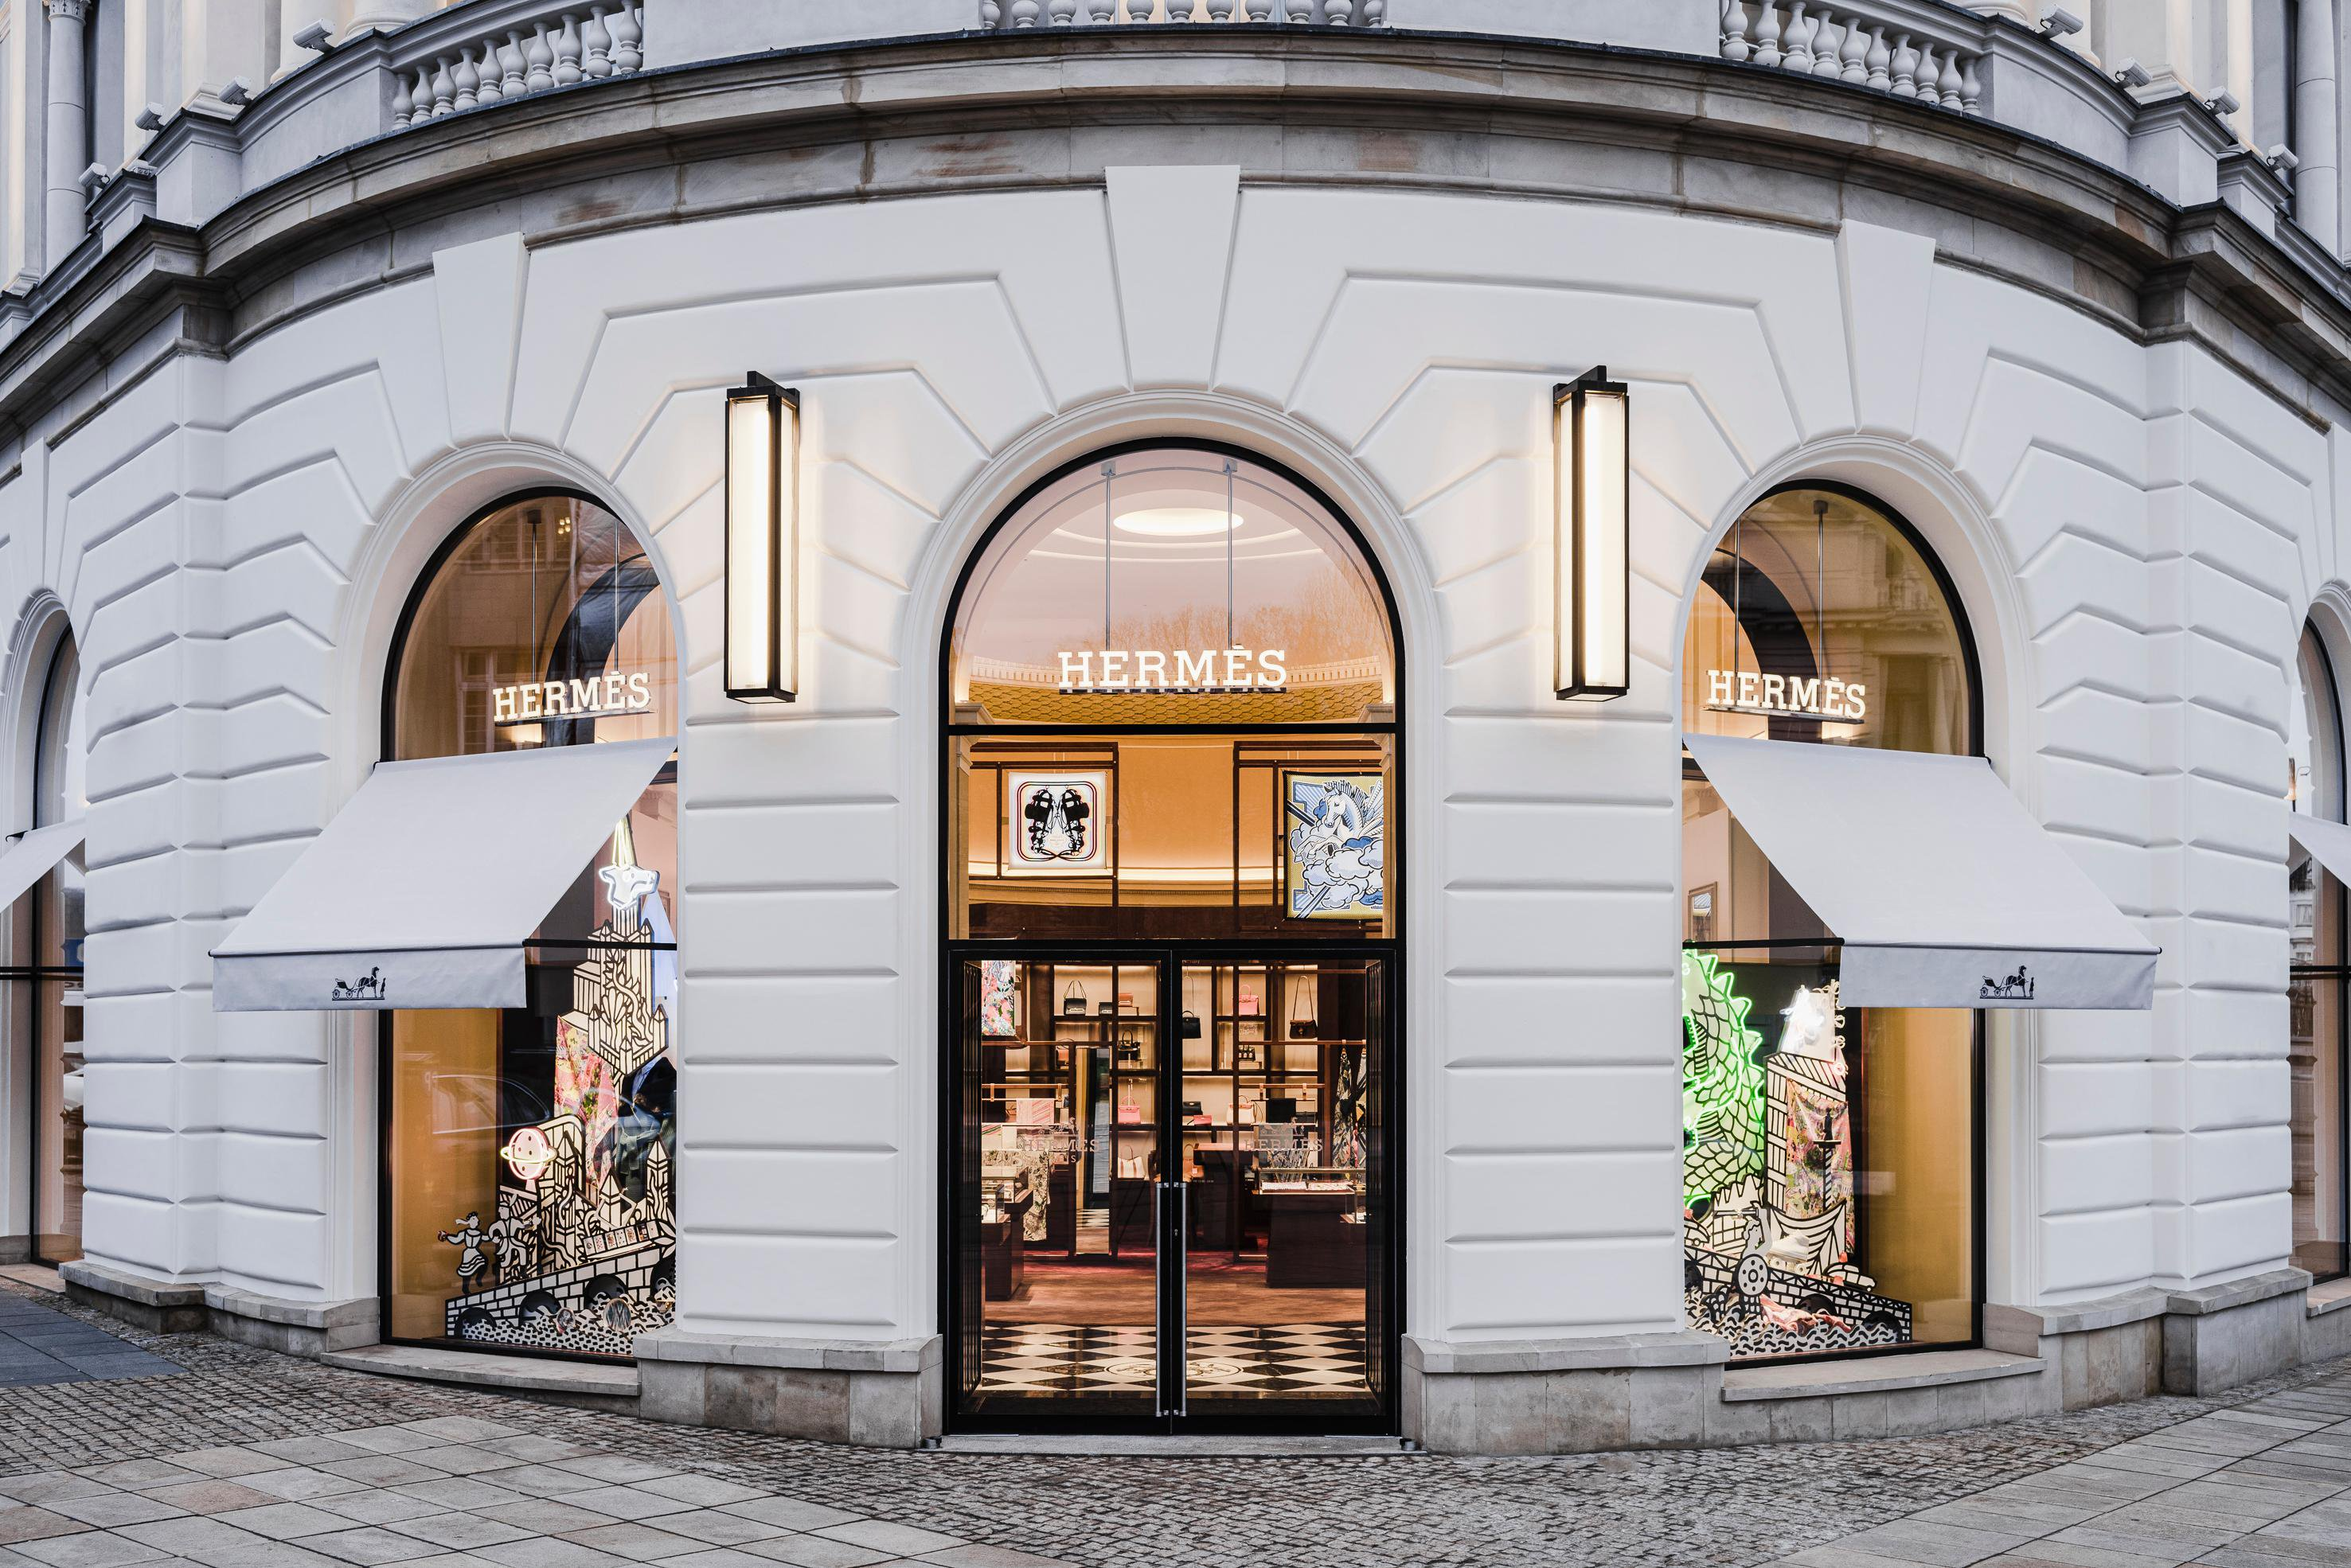 Hermes new store in Warsaw Poland